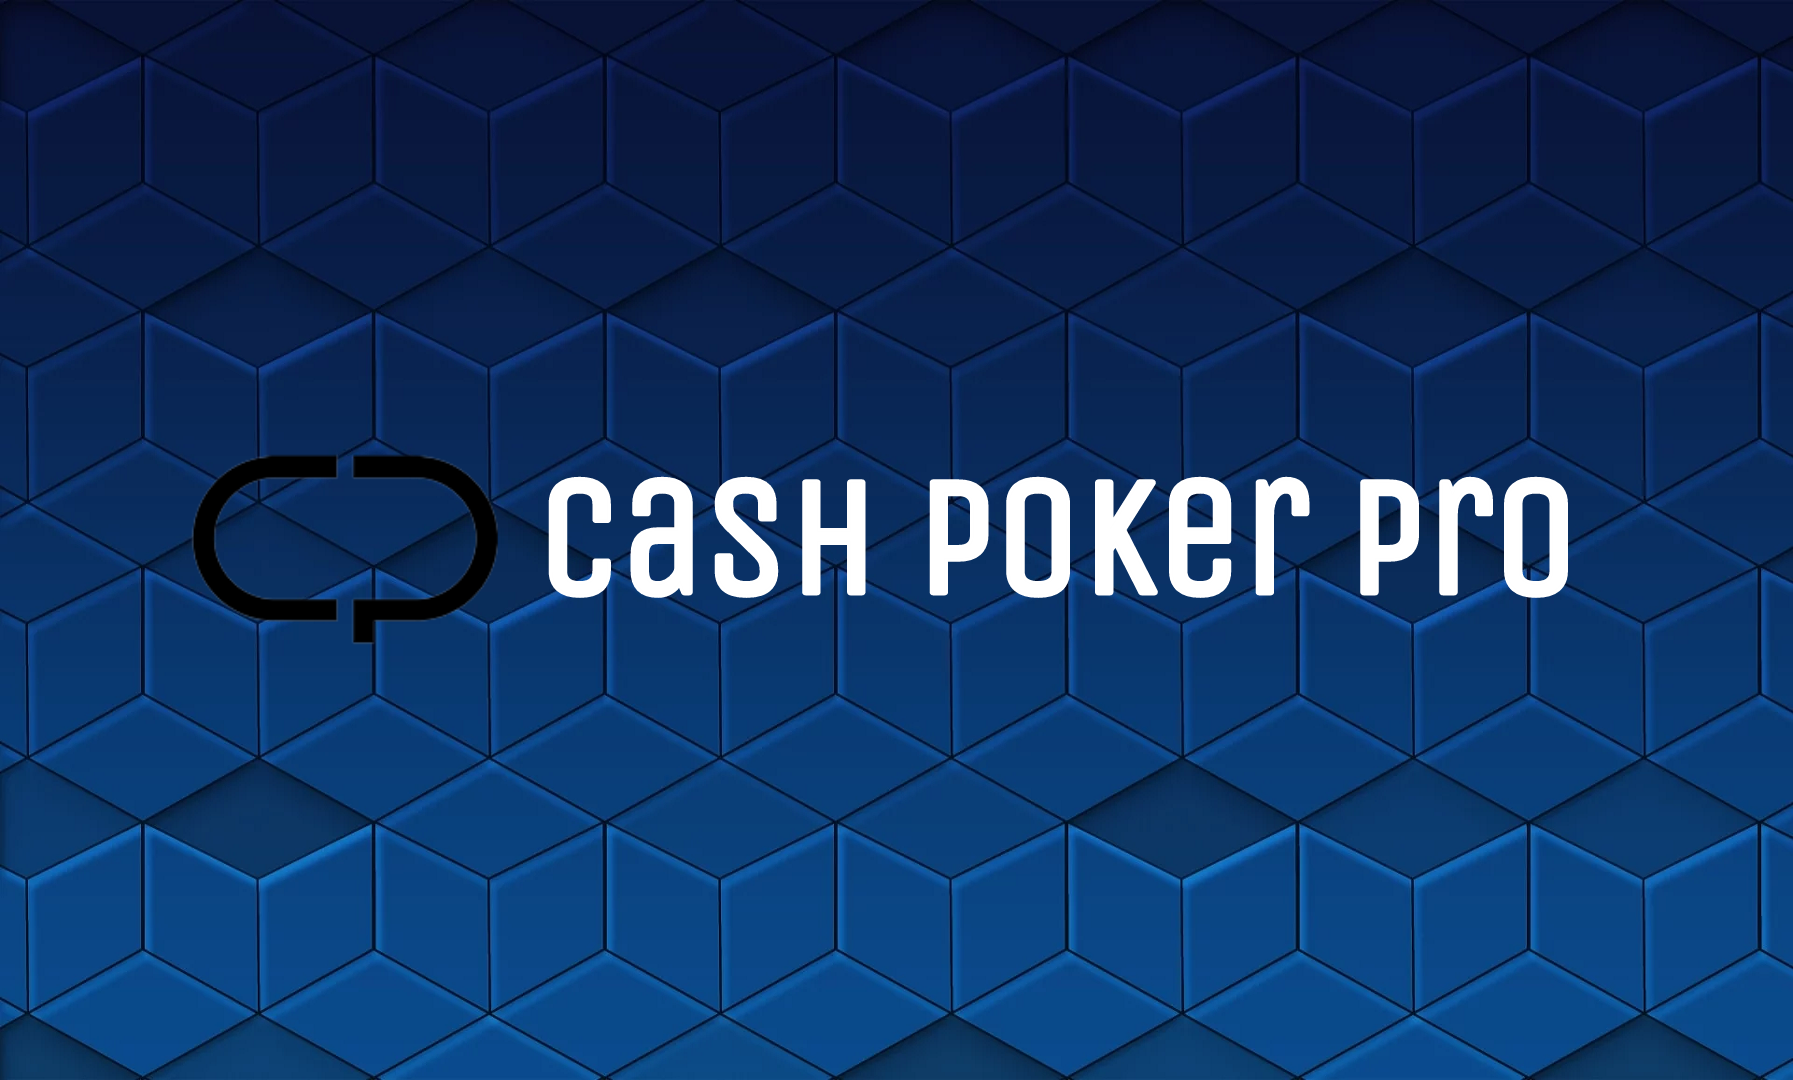 Background-Cash Poker Pro